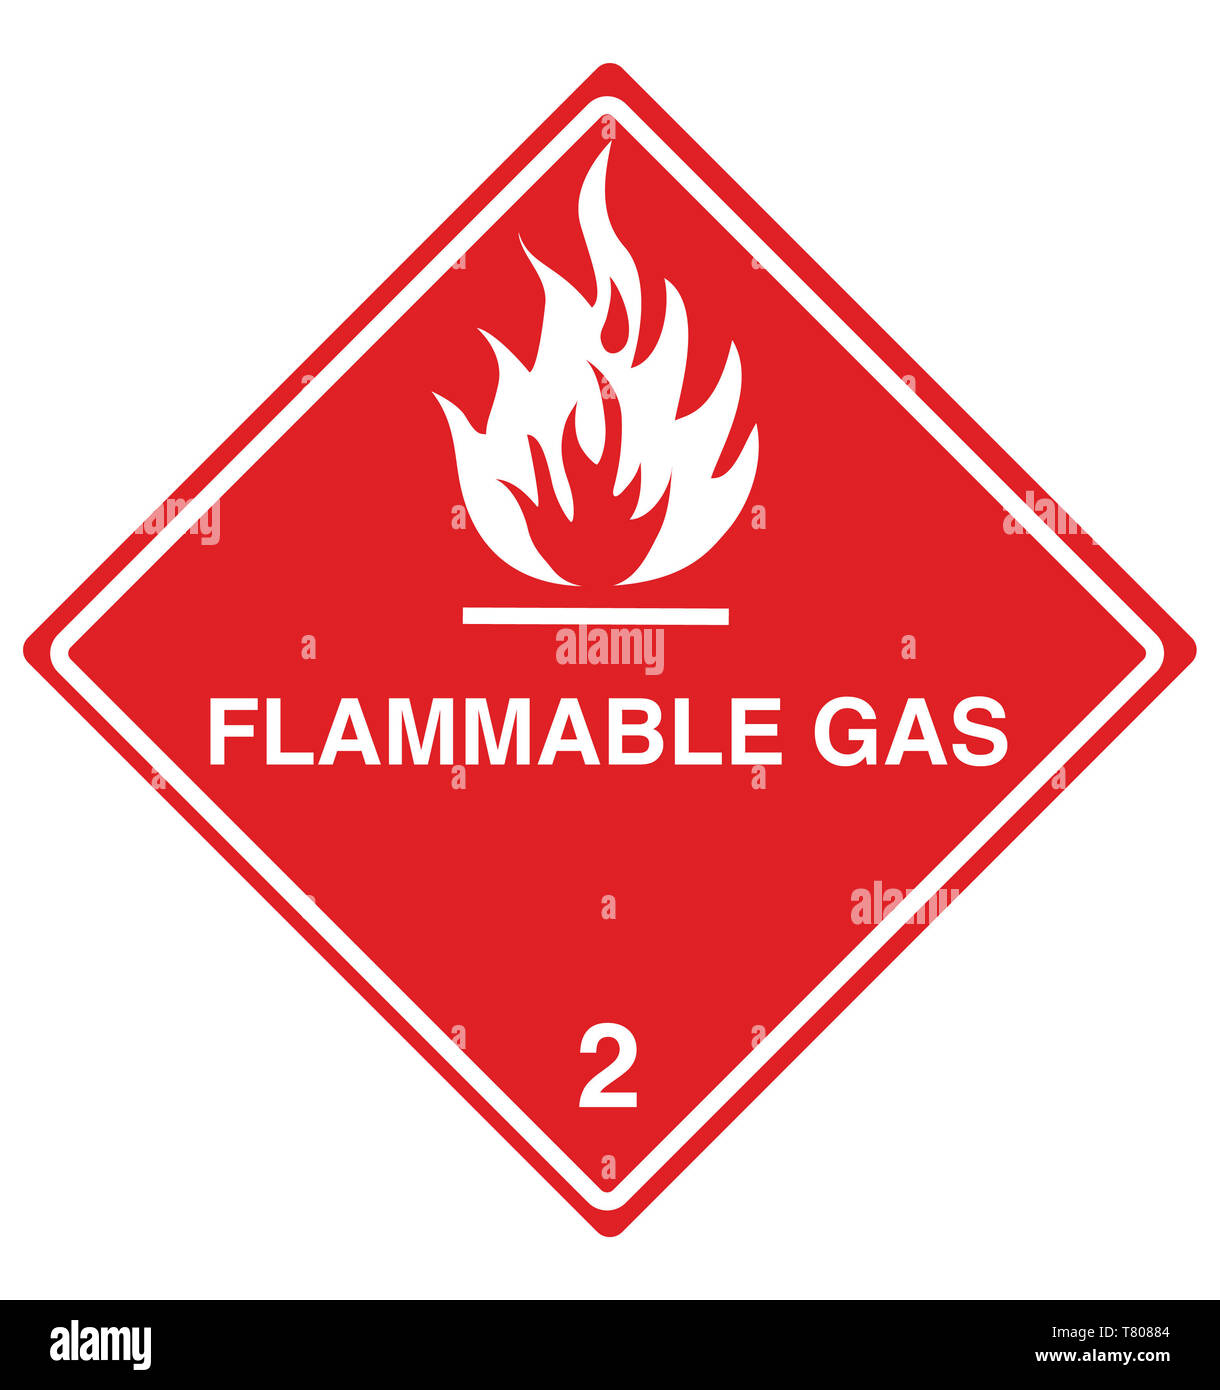 Flammable Gas Sign, Illustration - Stock Image